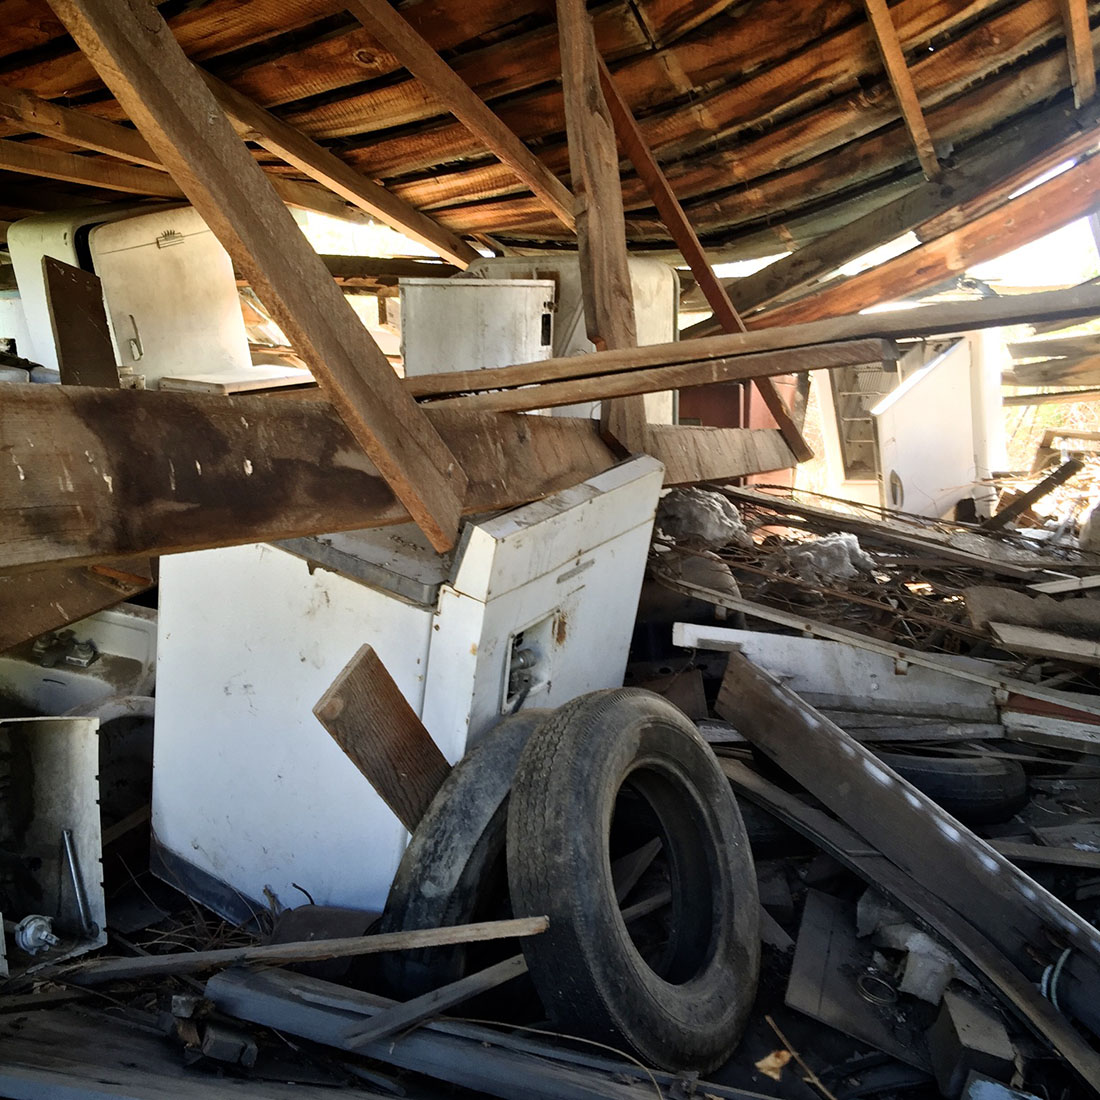 Collapsed Building with Hoarded Appliances and Tires - Bishop, CA - 2016 | Osceola Refetoff